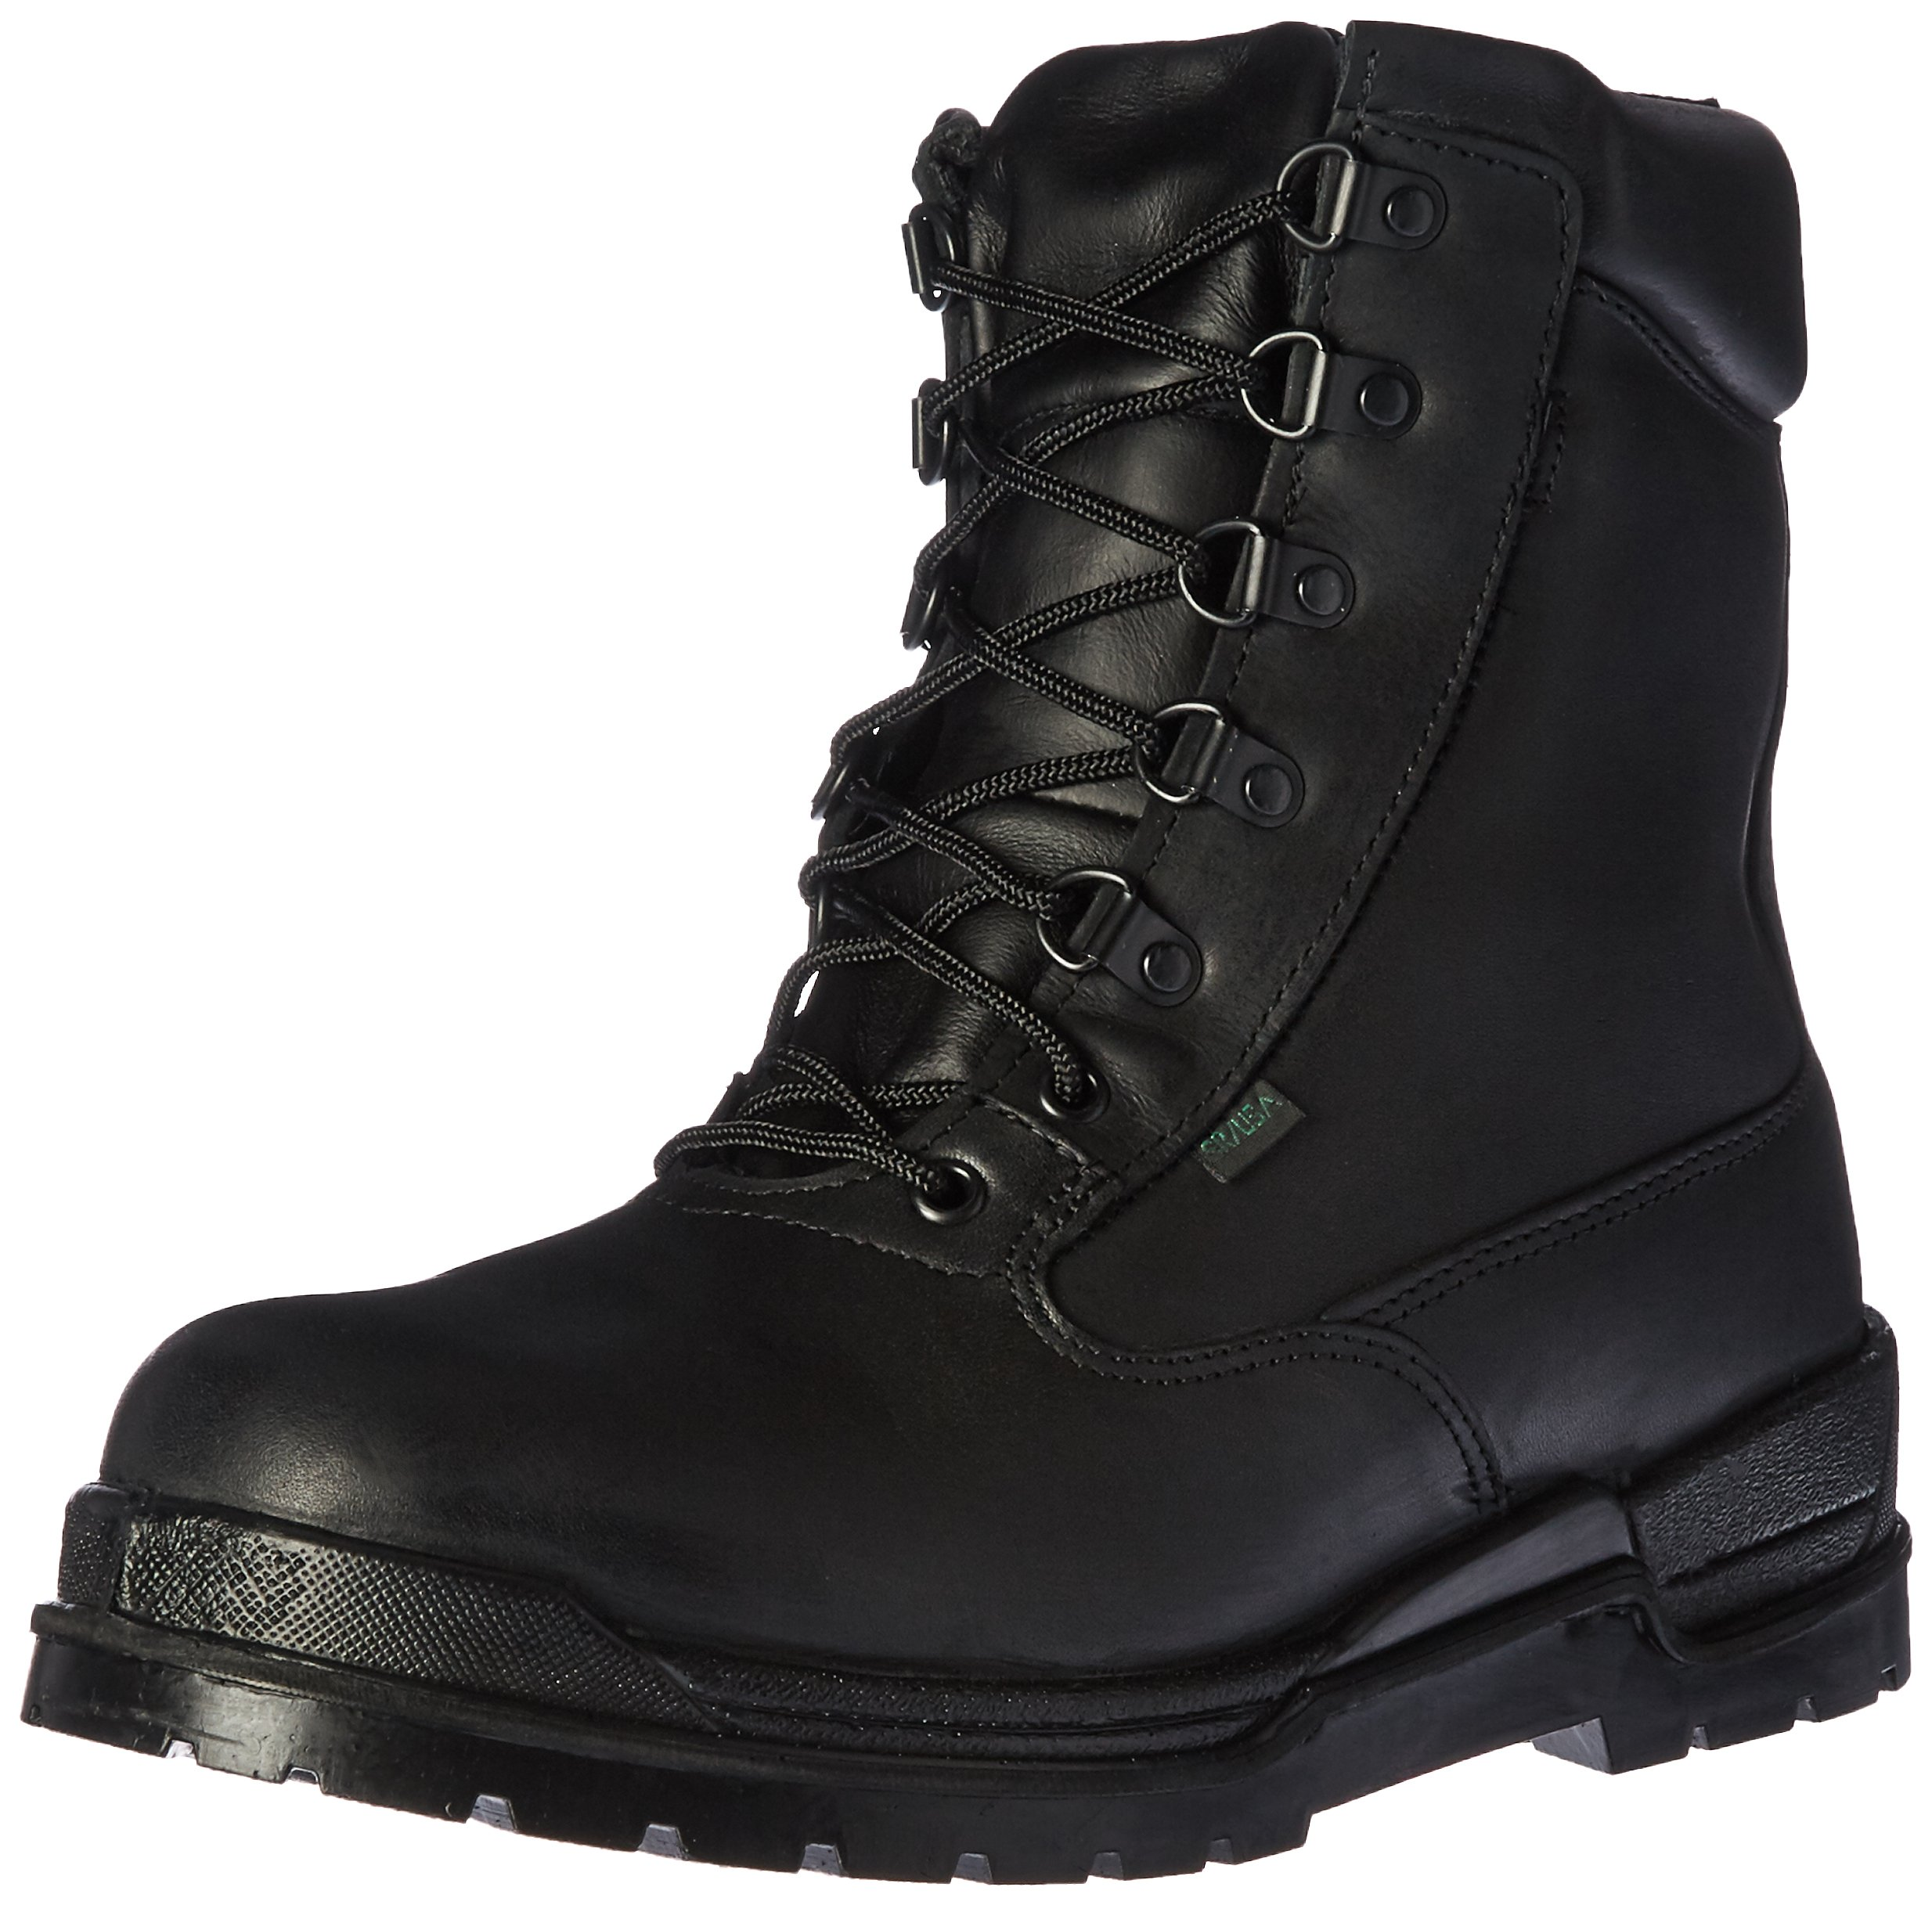 Rocky Men's 6 Inch Postal 8132-1 Slip Resistant Work Boot,Black,12 XW US by Rocky